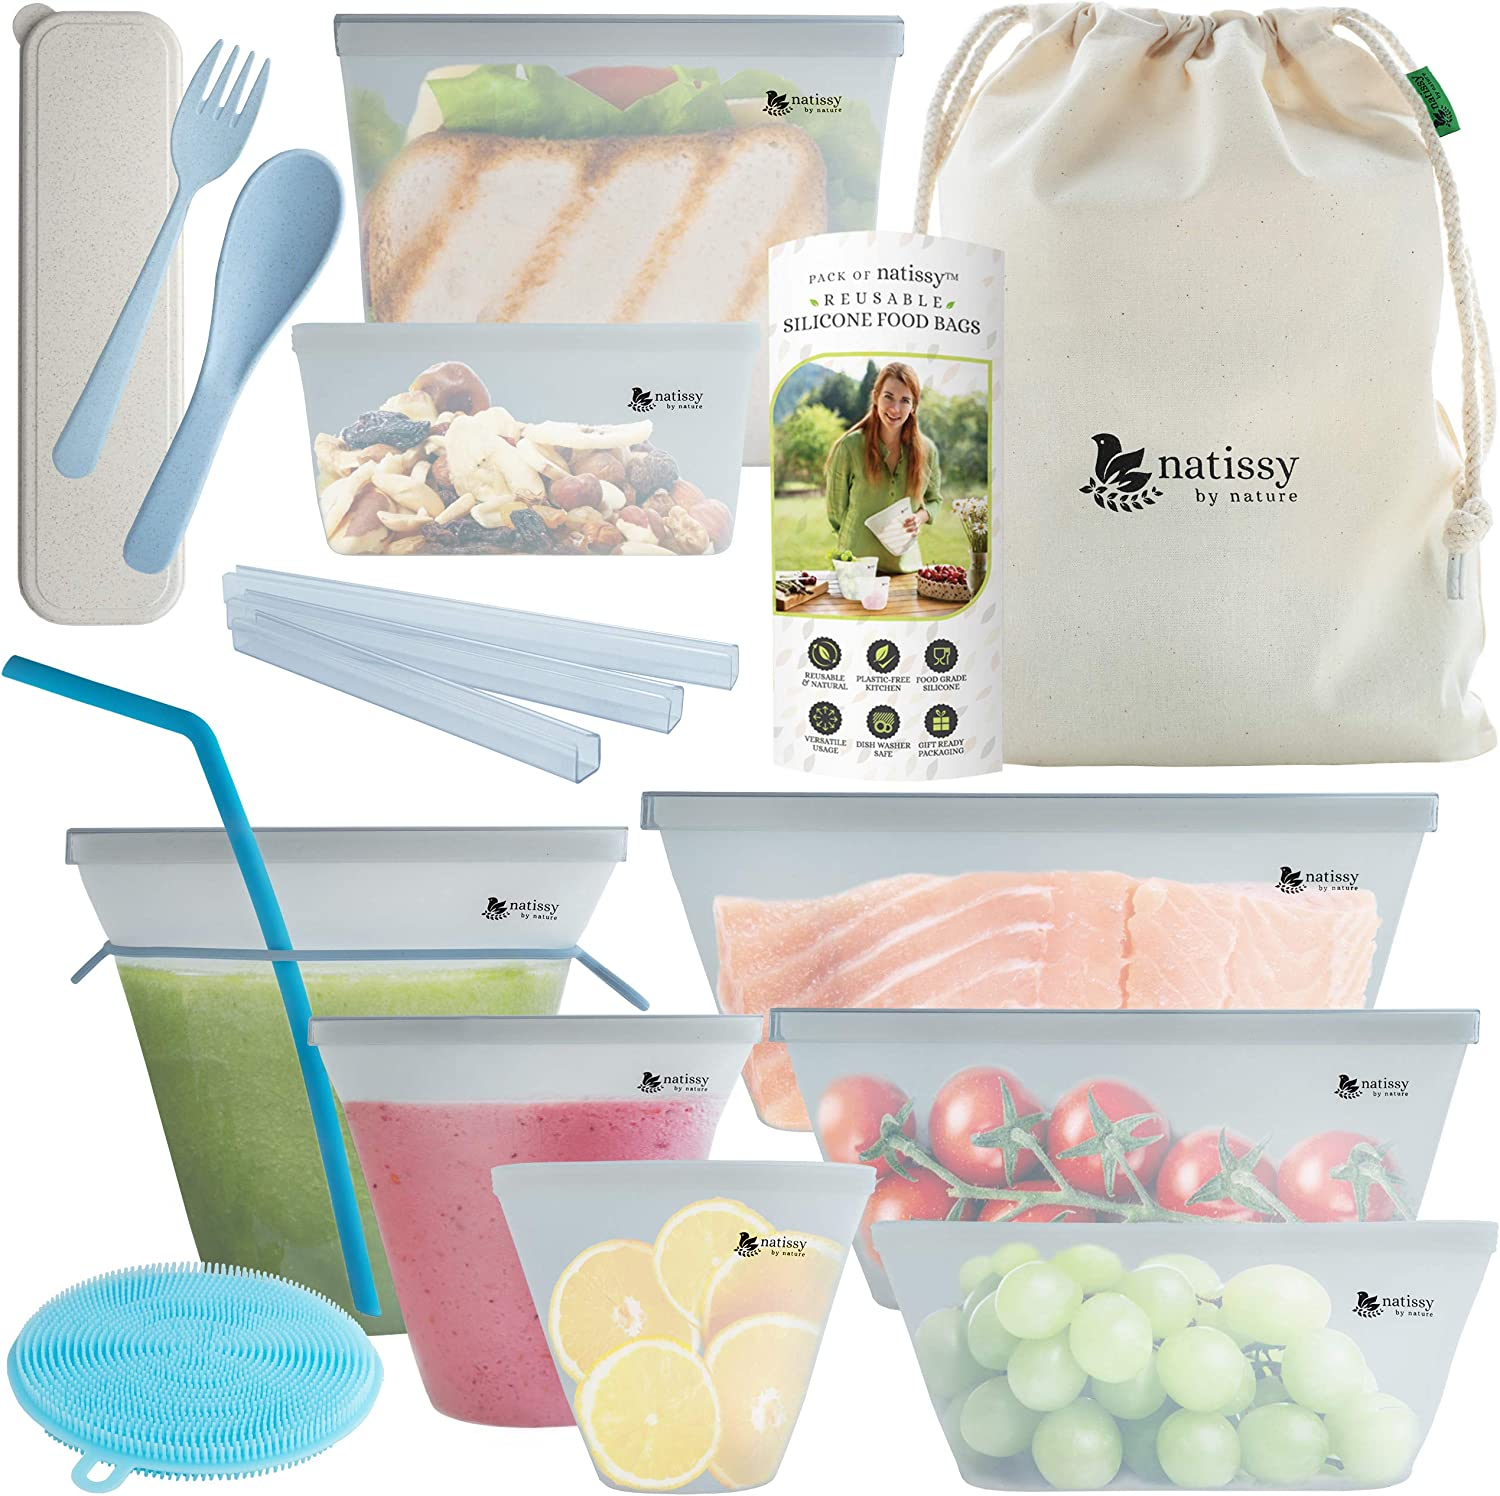 Reusable Silicone Food Storage Bag, 8-Pack Silicone Food Bags for Sandwich, Silicone Snack Pouch; Large & Small Silicon Freezer Baggies Dishwasher Safe; Thick Silicone Lunch Bag for Fridge & Sous Vide